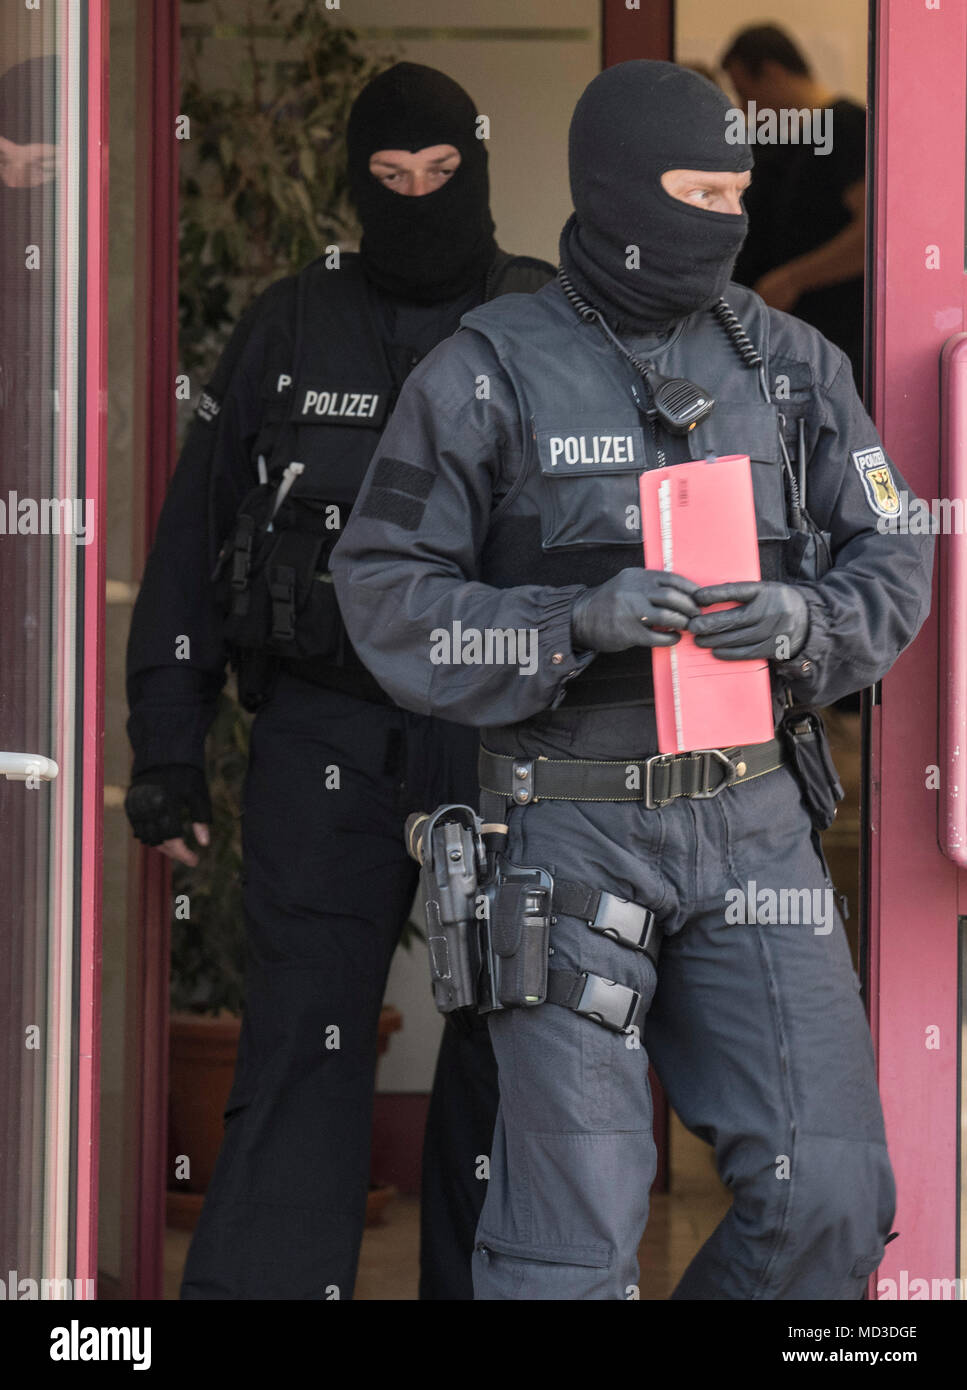 18 April 2018, Rastatt, Maintal: Masked officers of the German police force during a raid of a brothel. The police is cracking down on organized crime in a large-scale, nationwide raid starting Wednesday morning. According to the German police in Stuttgart, the focus lies on forged visas, human trafficking, pimping, and forced prostitution of Thai women. More than 1500 police officers are taking part in this raid. Photo: Boris Roessler/dpa Stock Photo